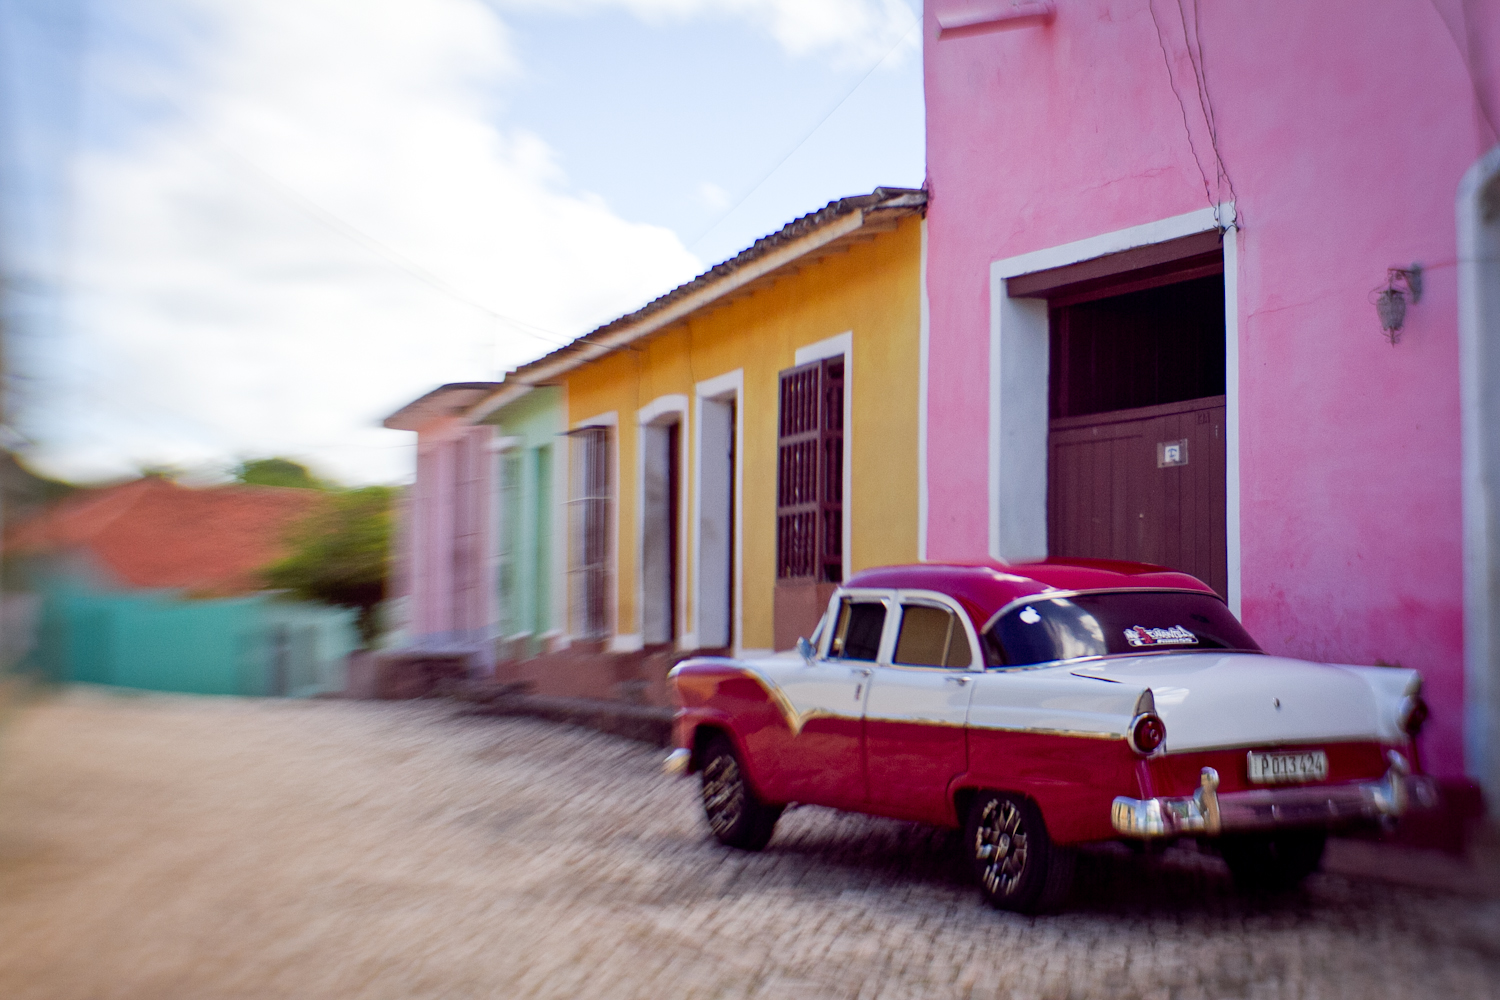 Old car, colorful houses, Trinidad, Cuba